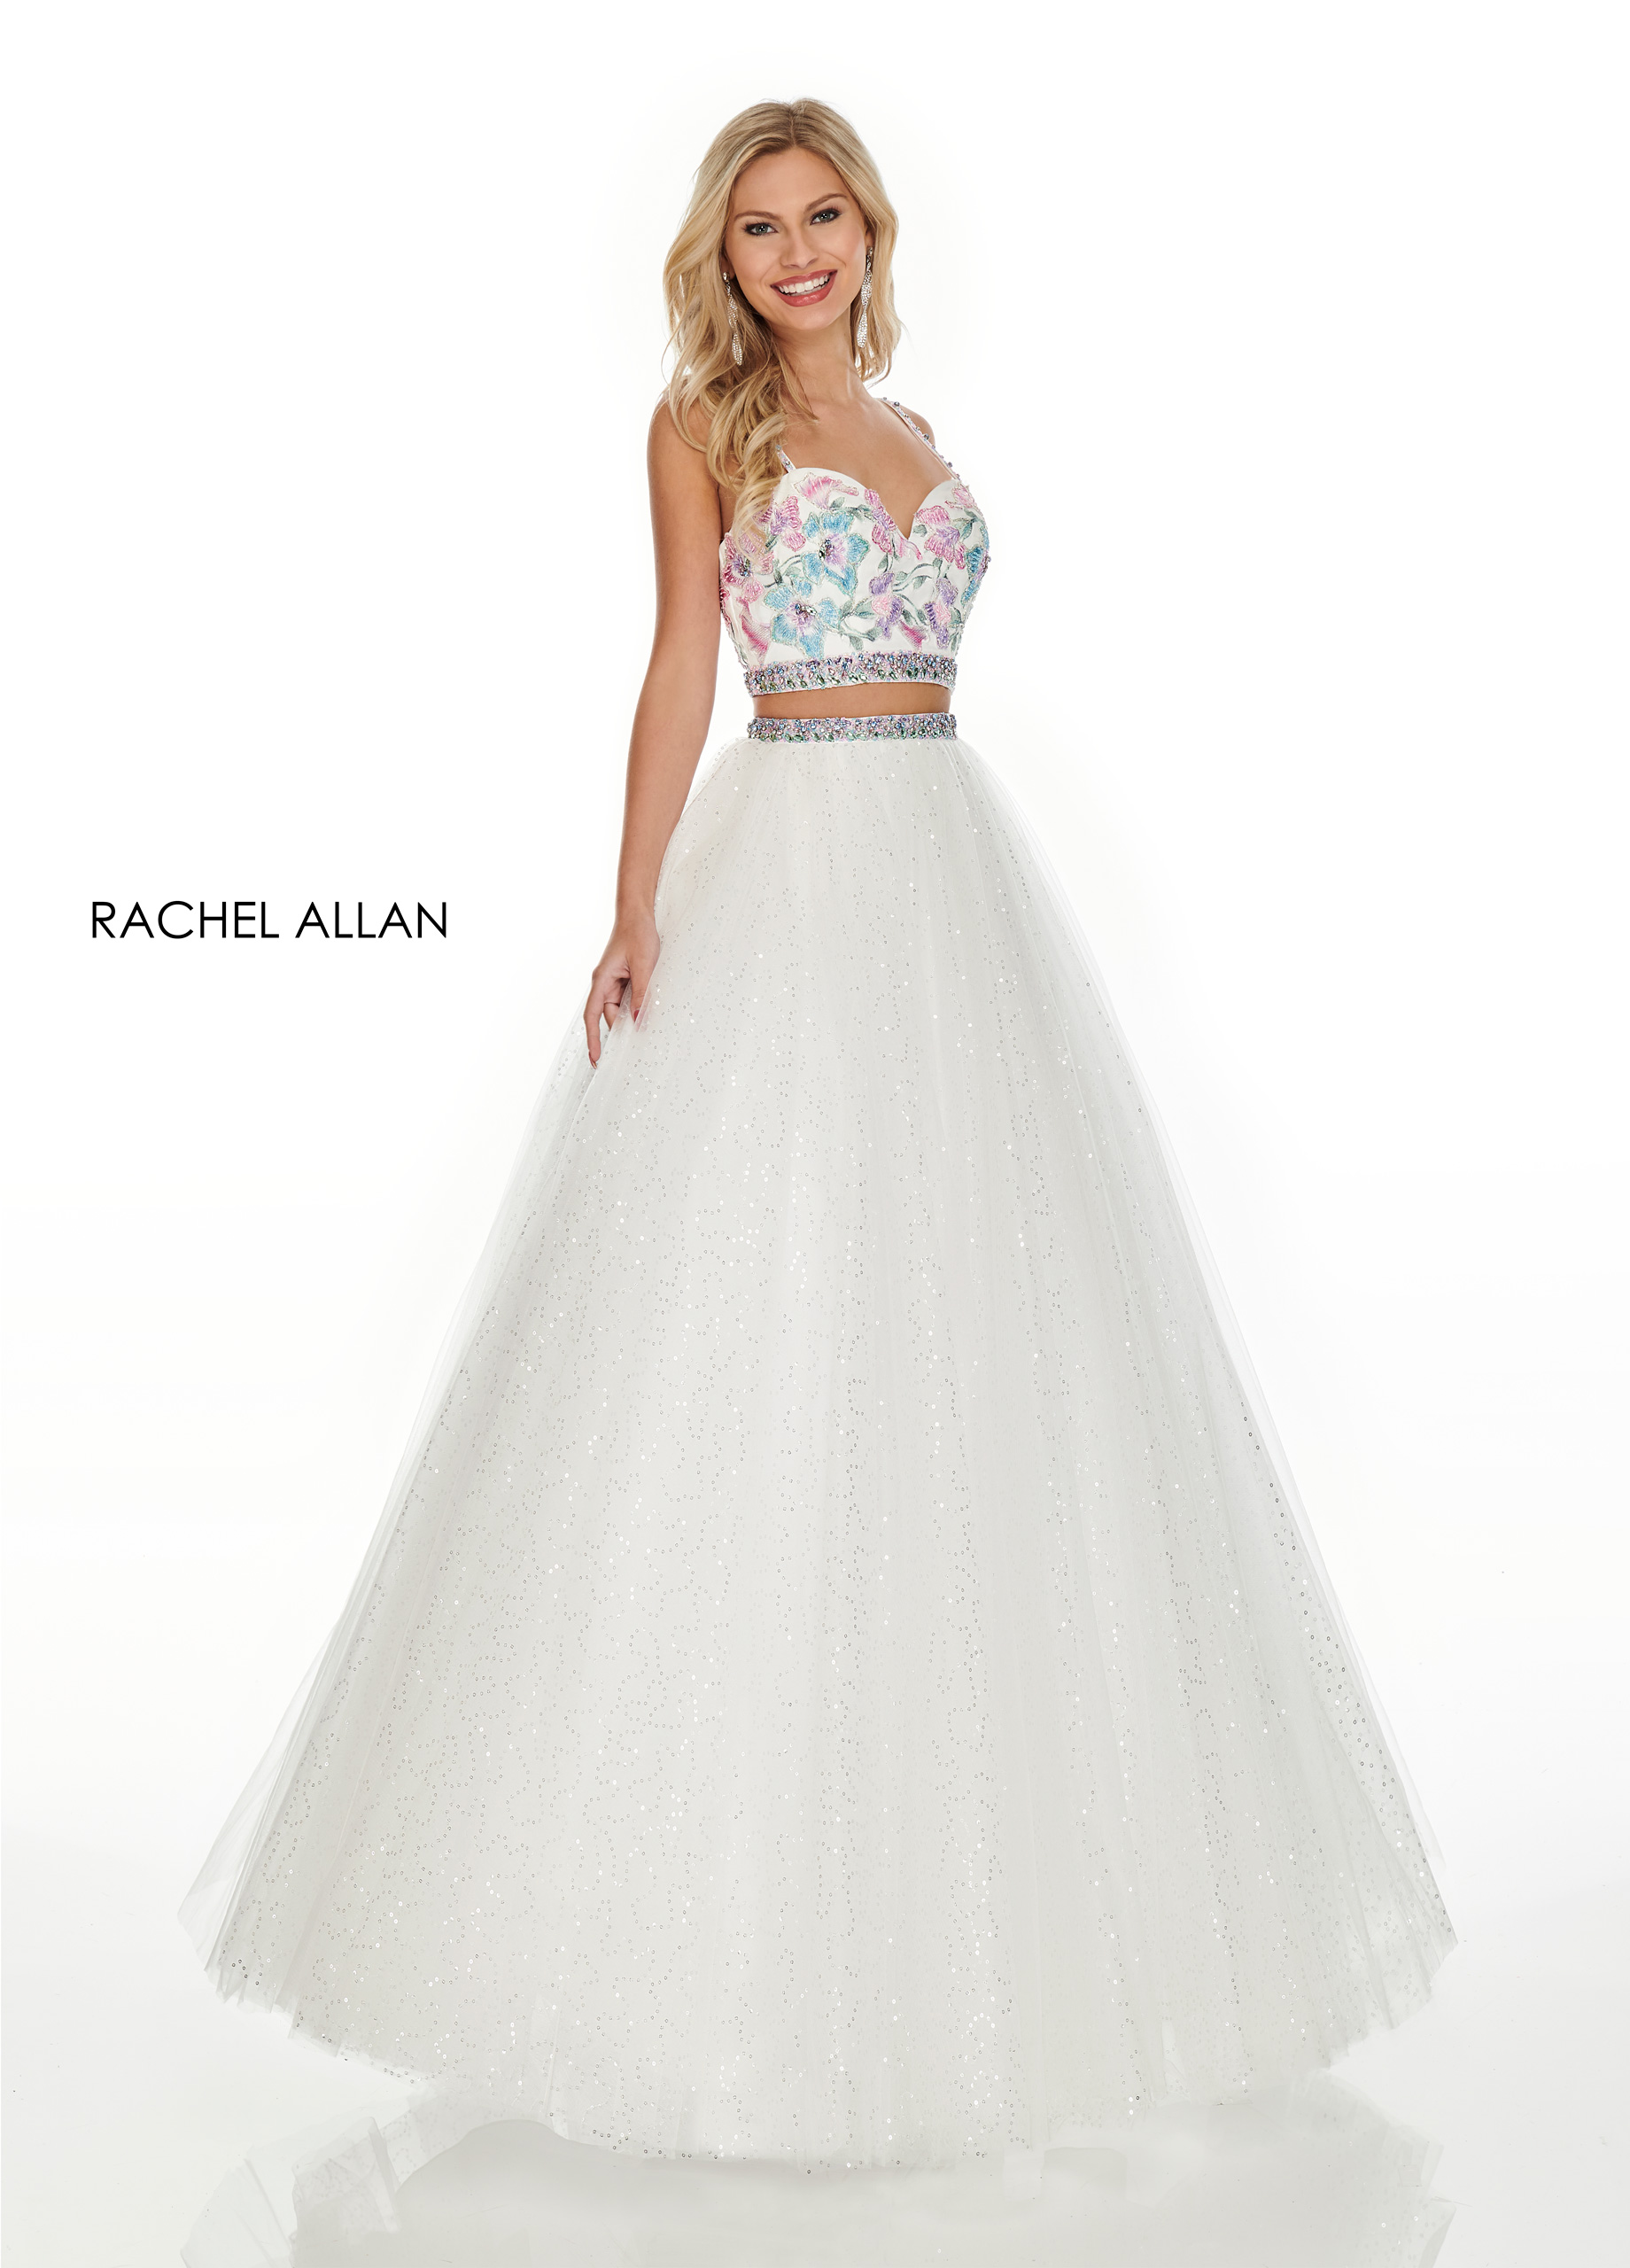 Sweetheart Two-Piece Prom Dresses in White Color